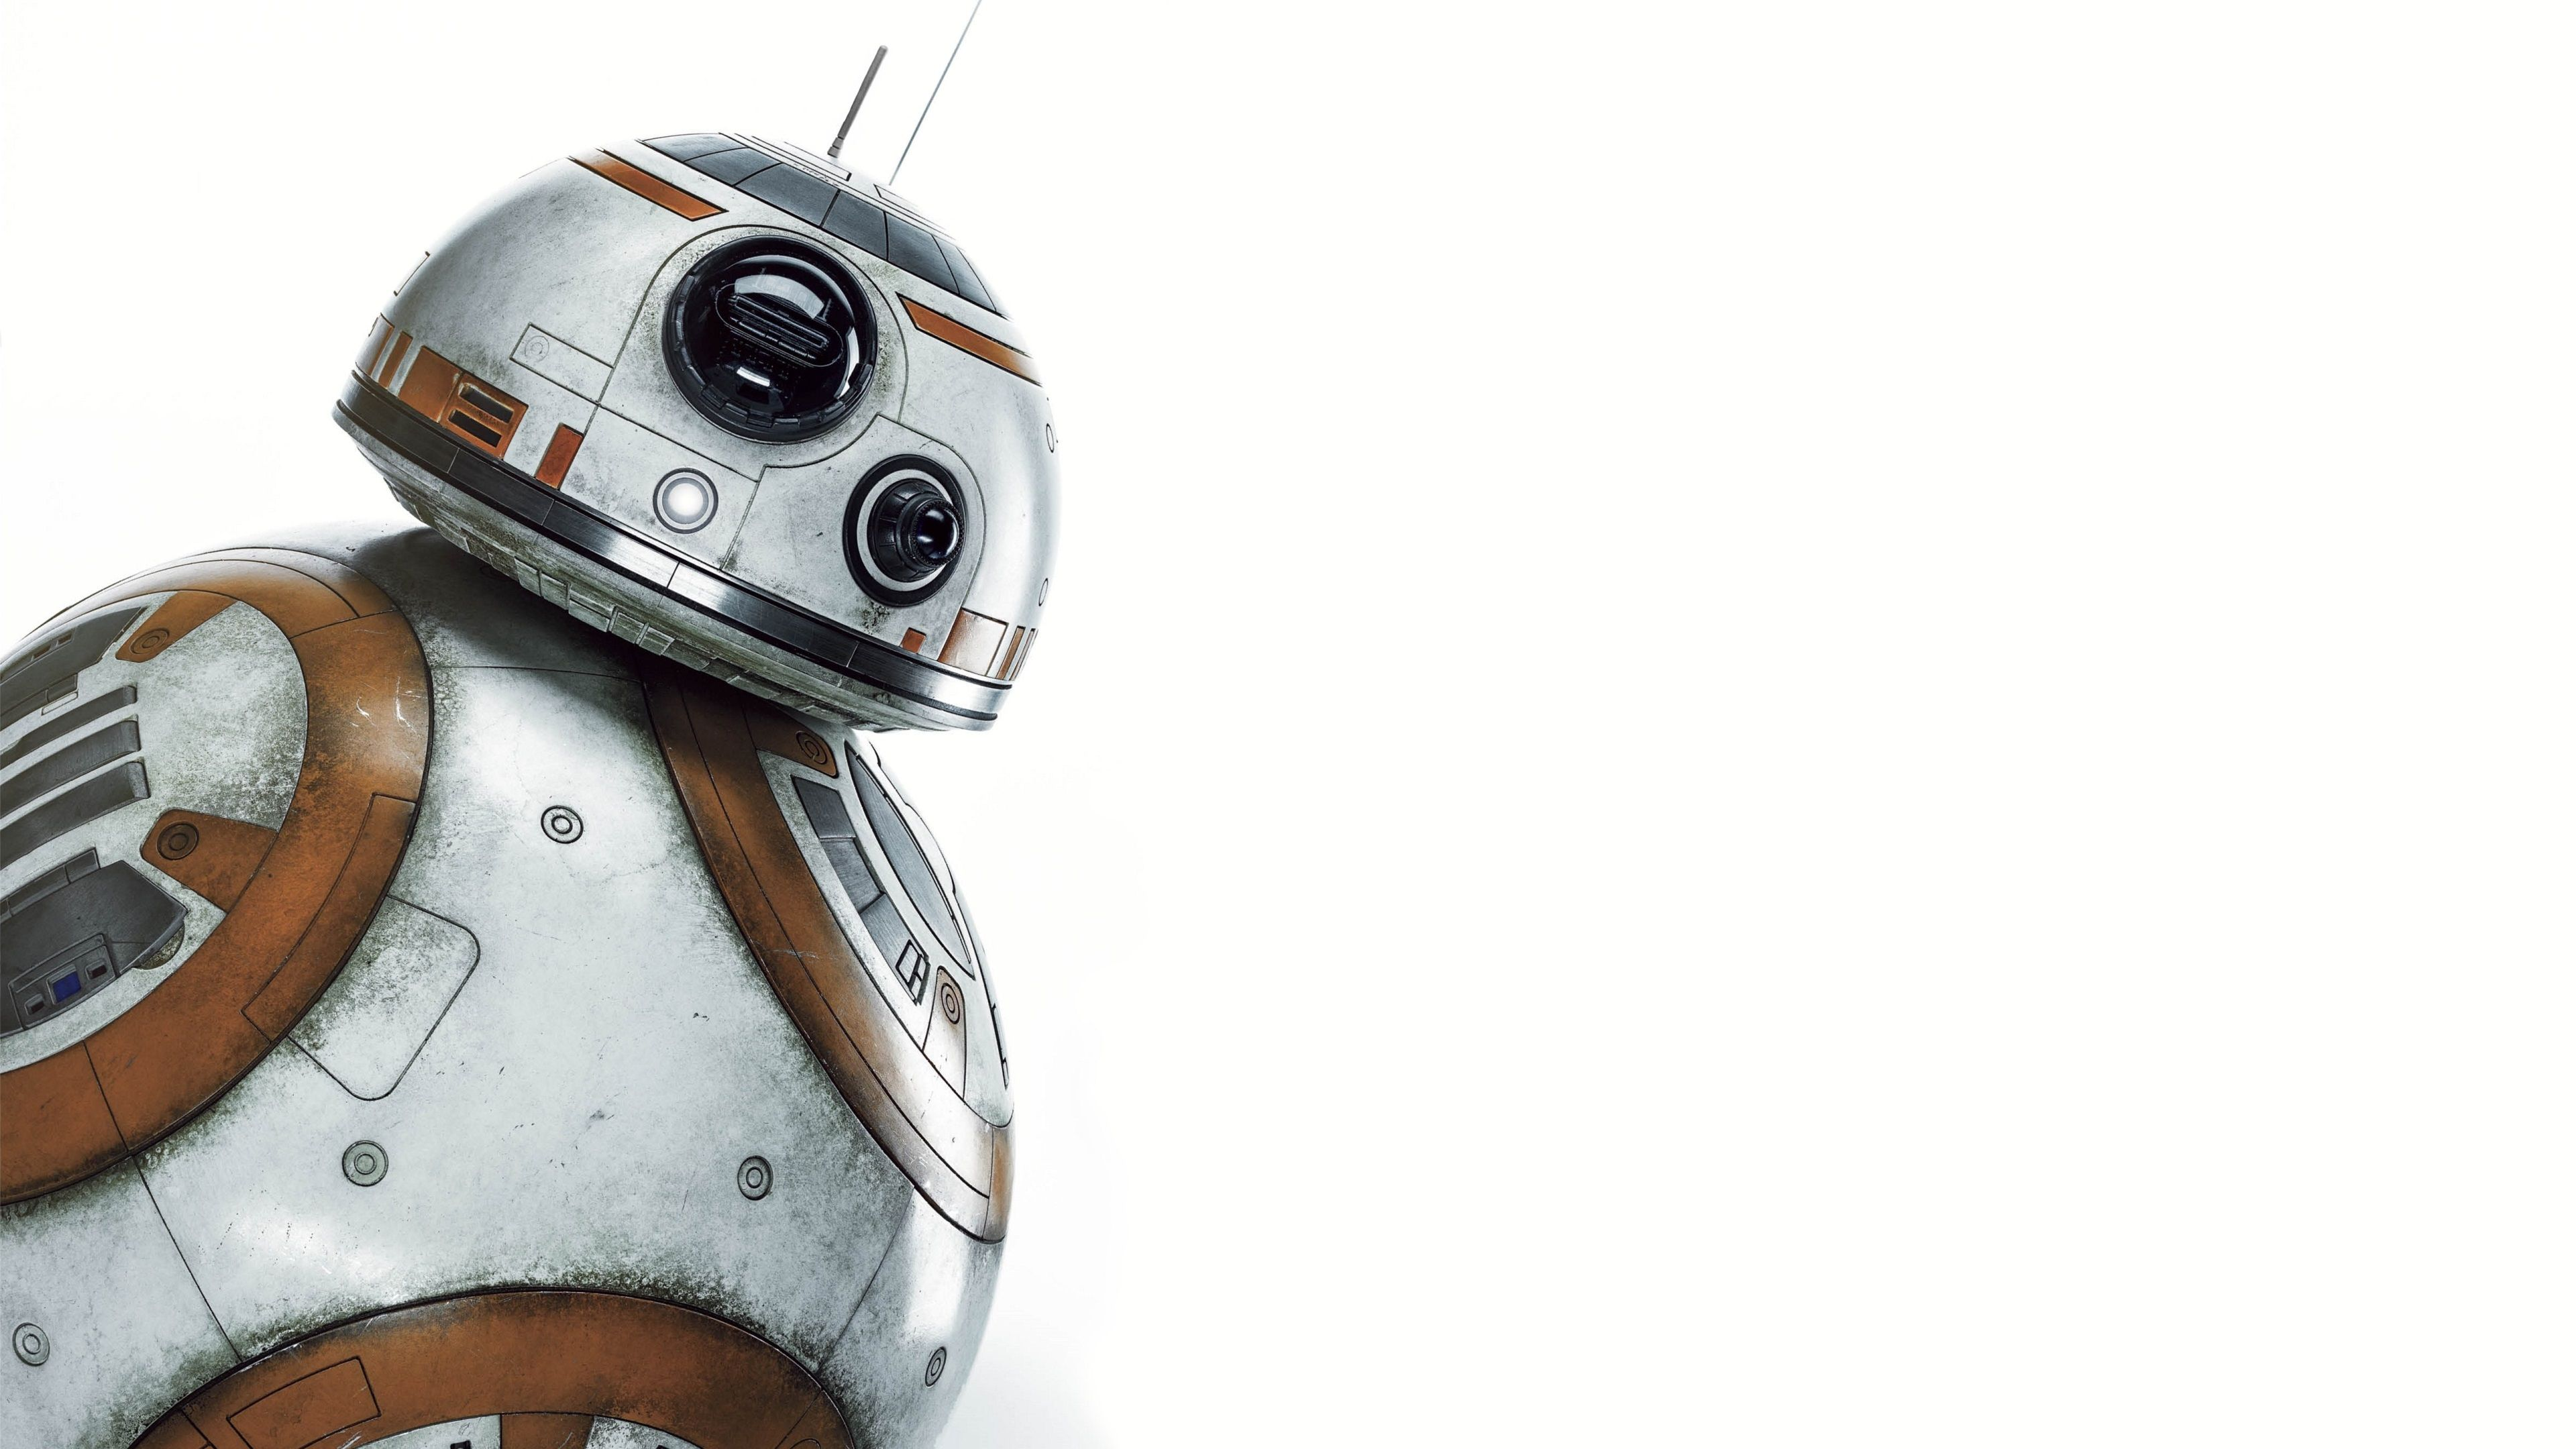 3840x2160 Bb 8 Droid 4k Free Wallpaper Download Star Wars Wallpaper